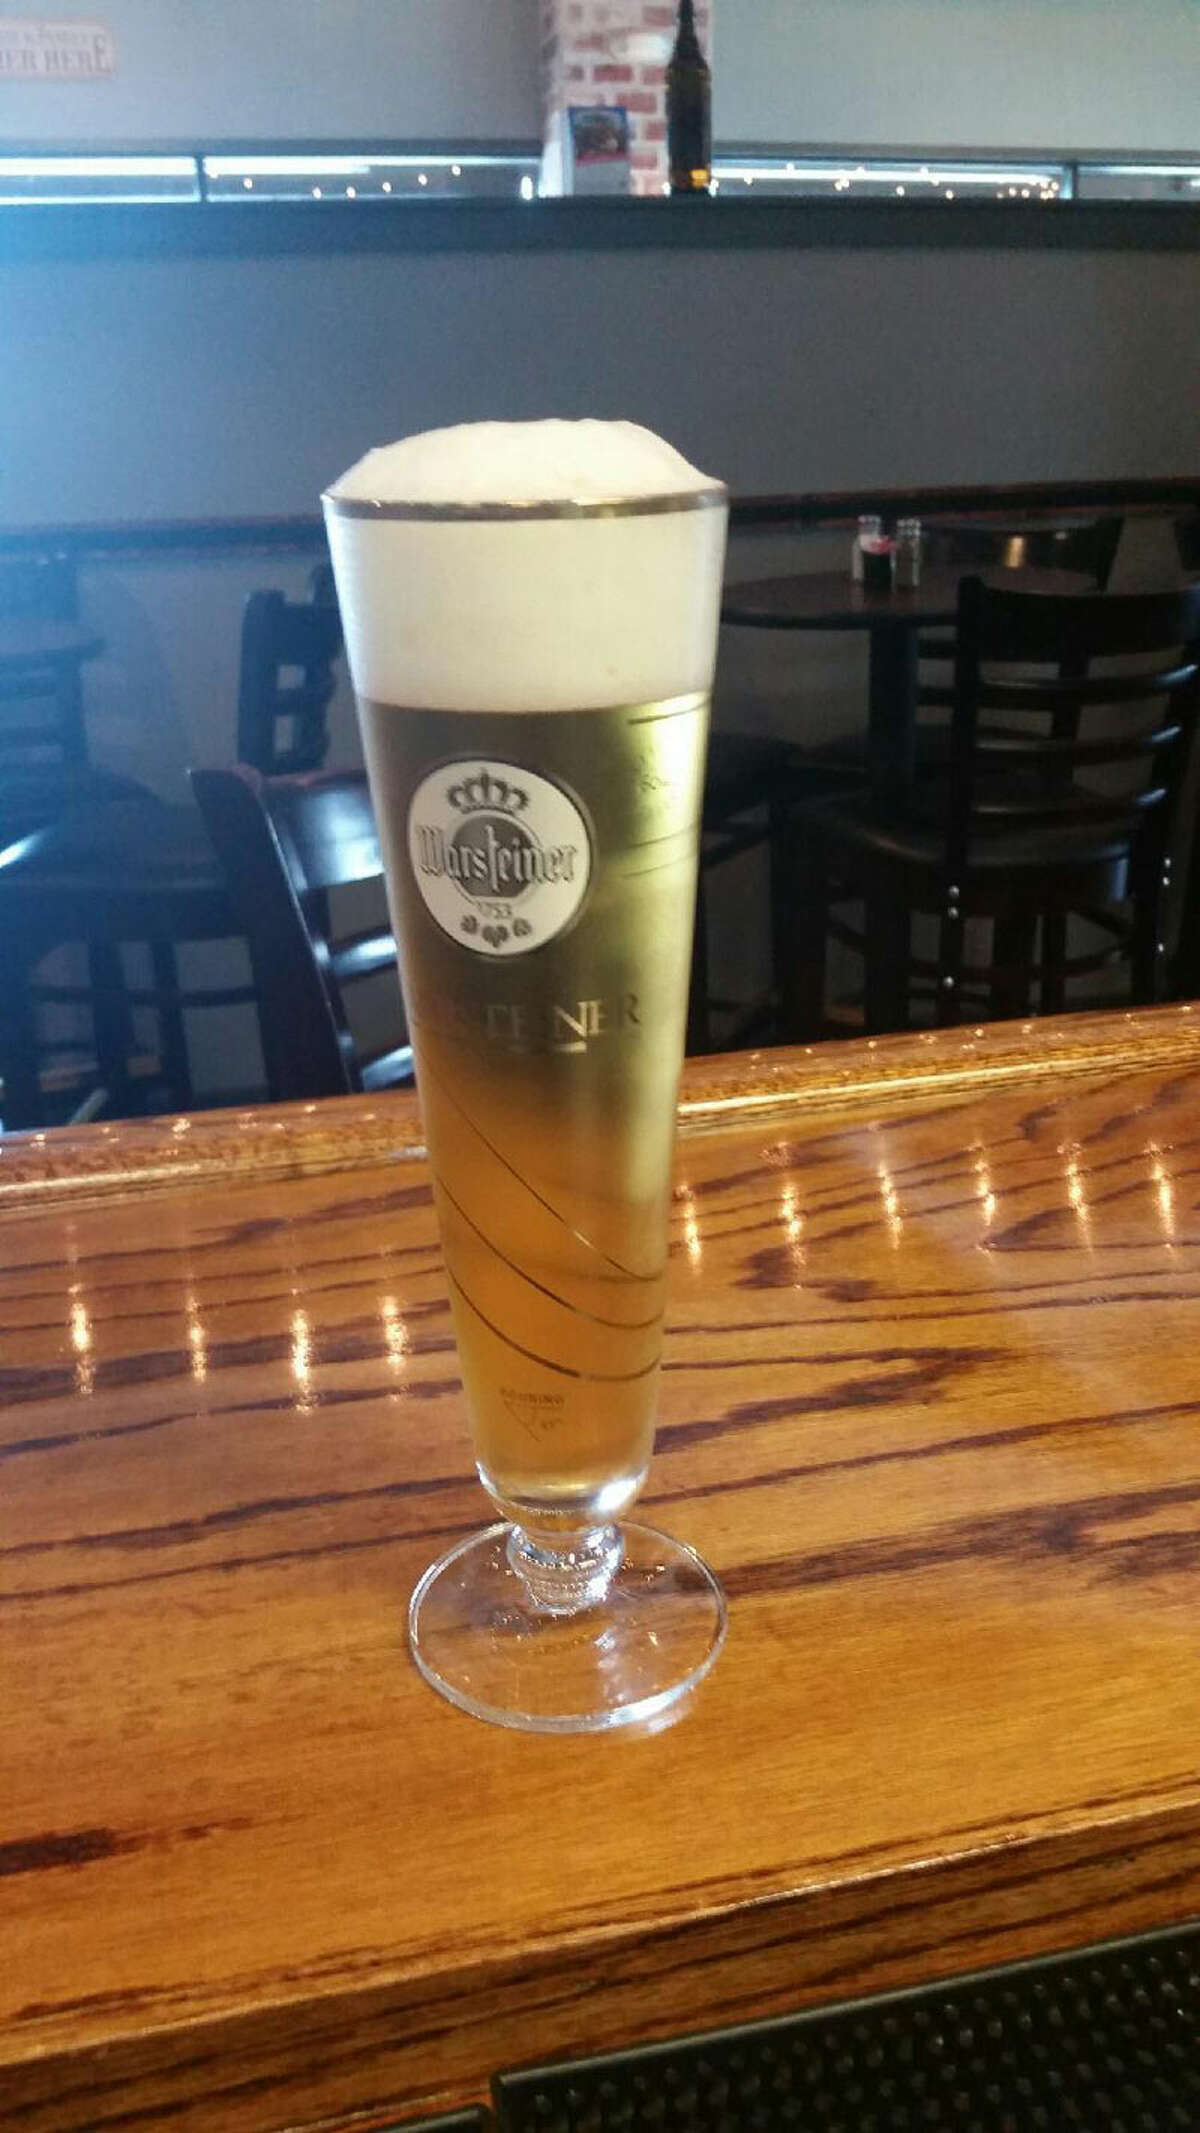 Warsteiner at Bavarian Brauhaus. If a cocktail isn't what you're craving, Bavarian Brauhaus can also serve you up an ice cold Warsteiner in a tall glass. www.bavarianbrauhaus.com